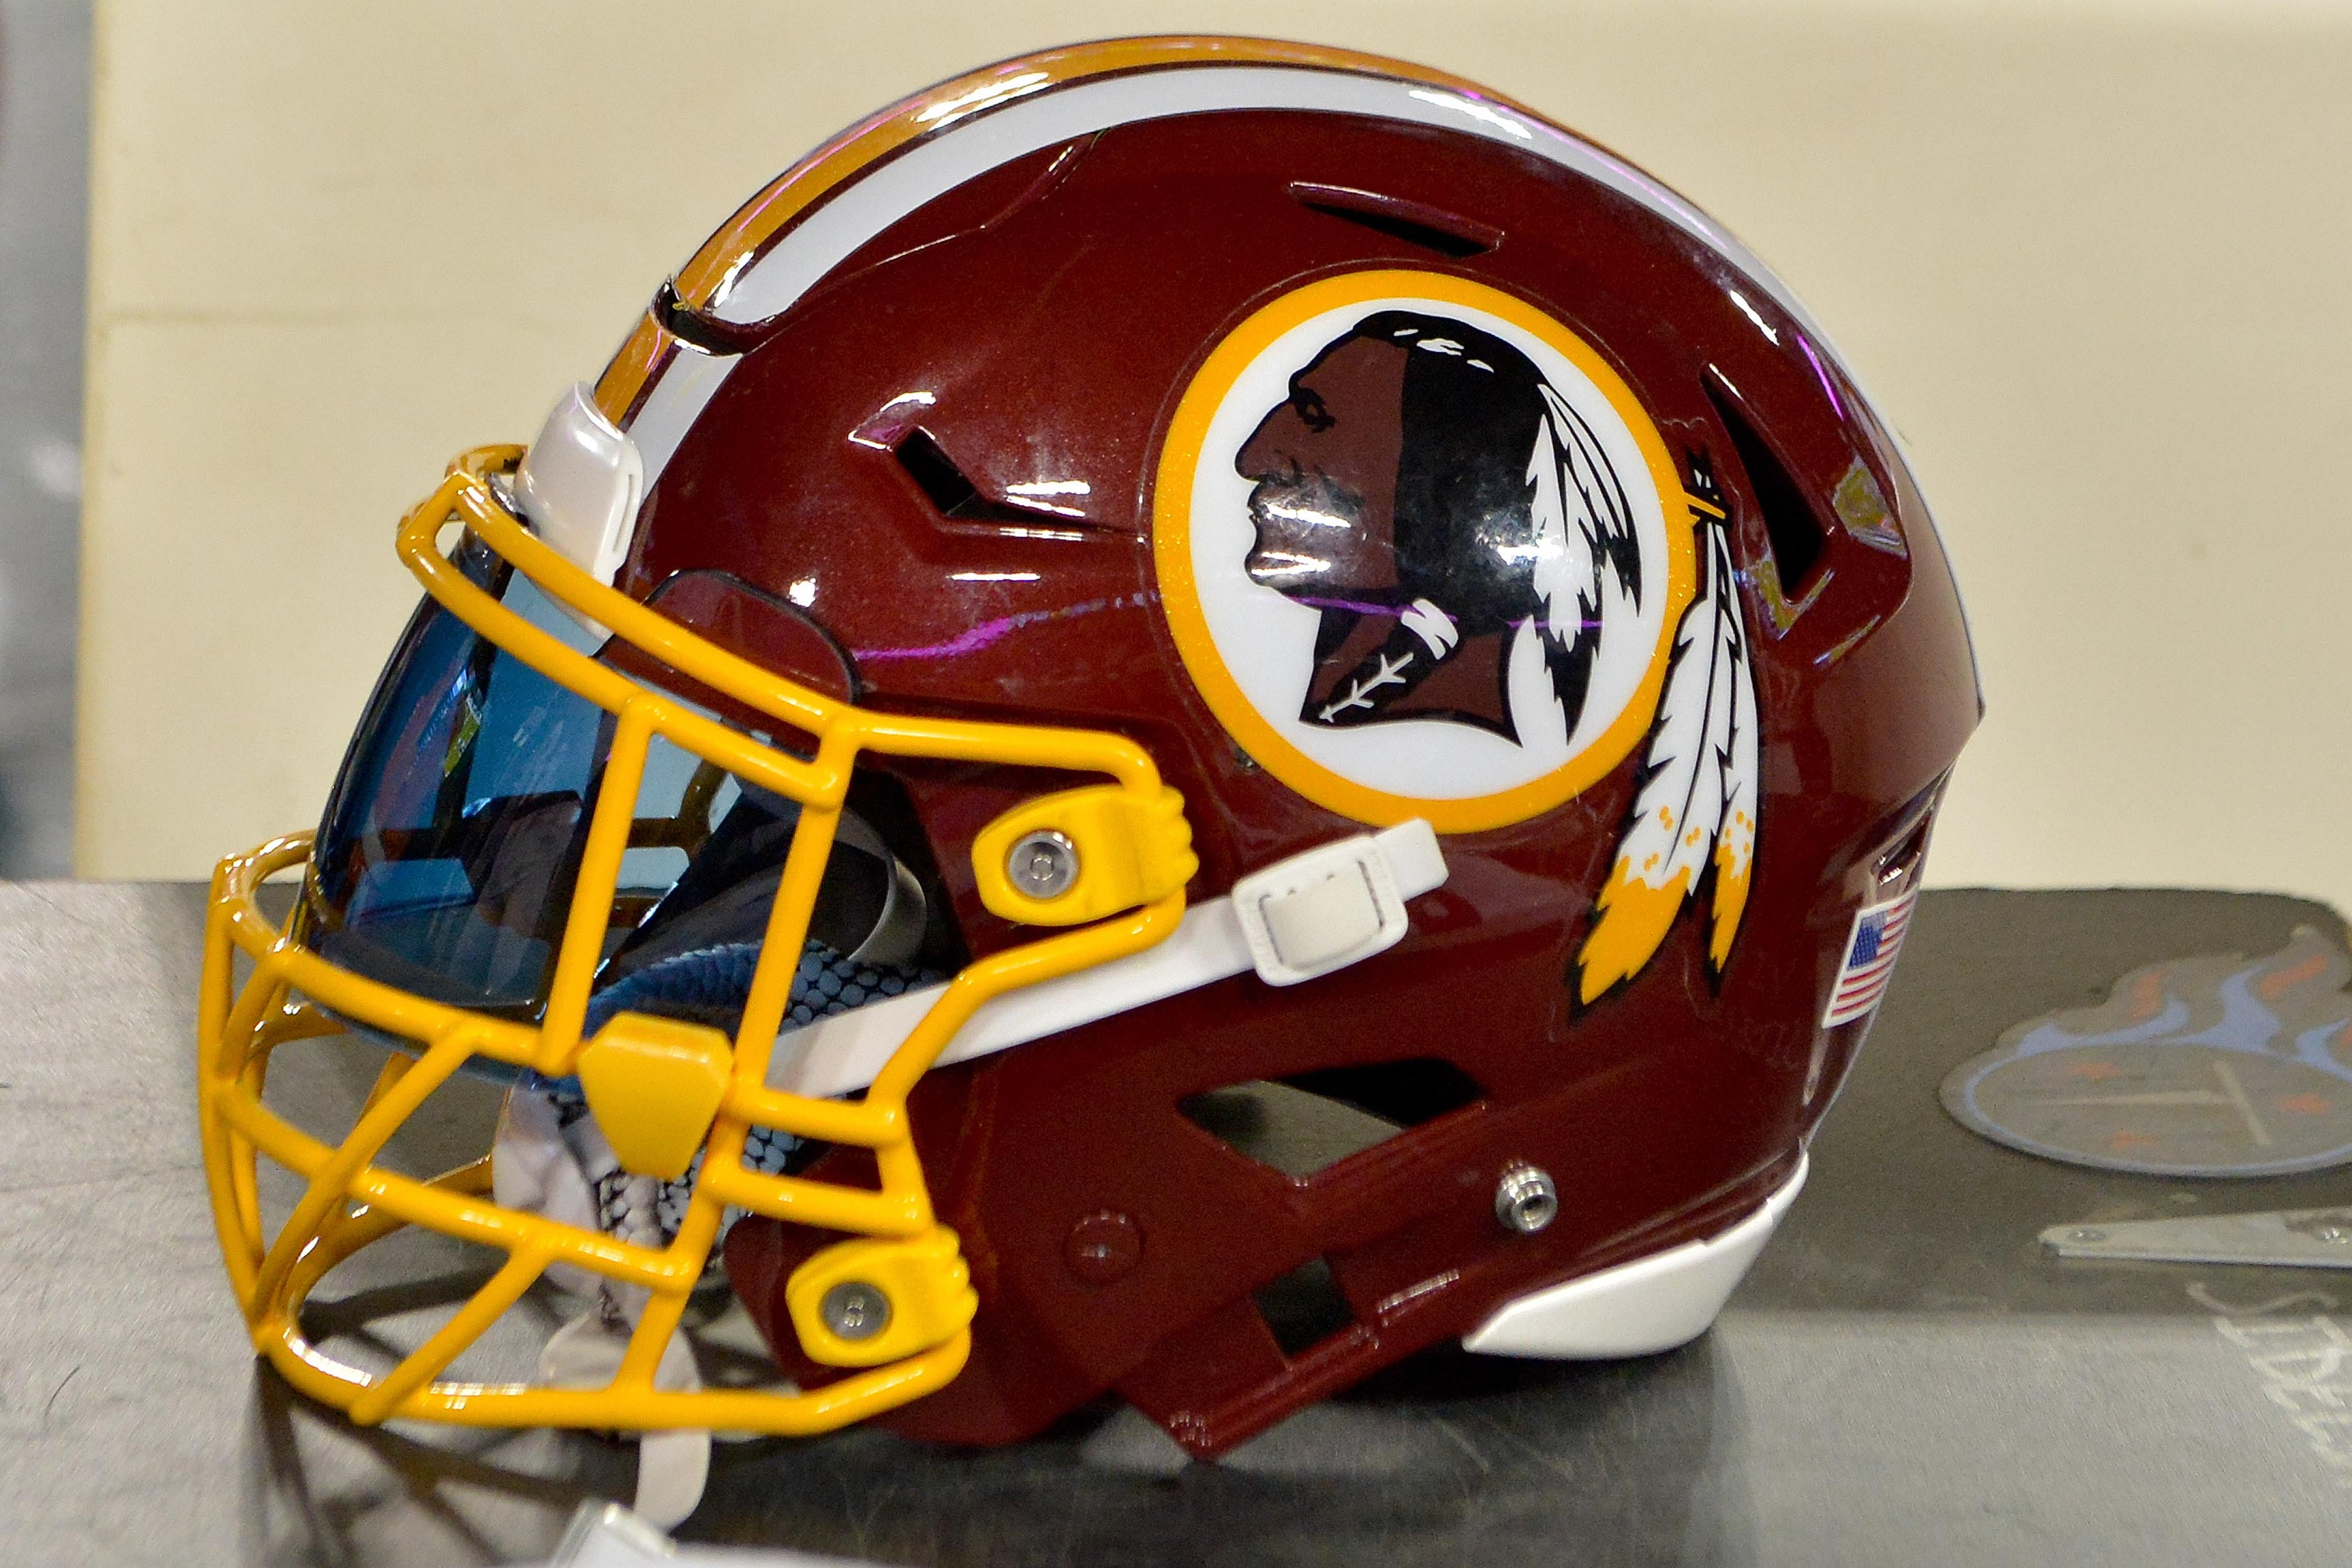 NFL: Washington Redskins at Tennessee Titans